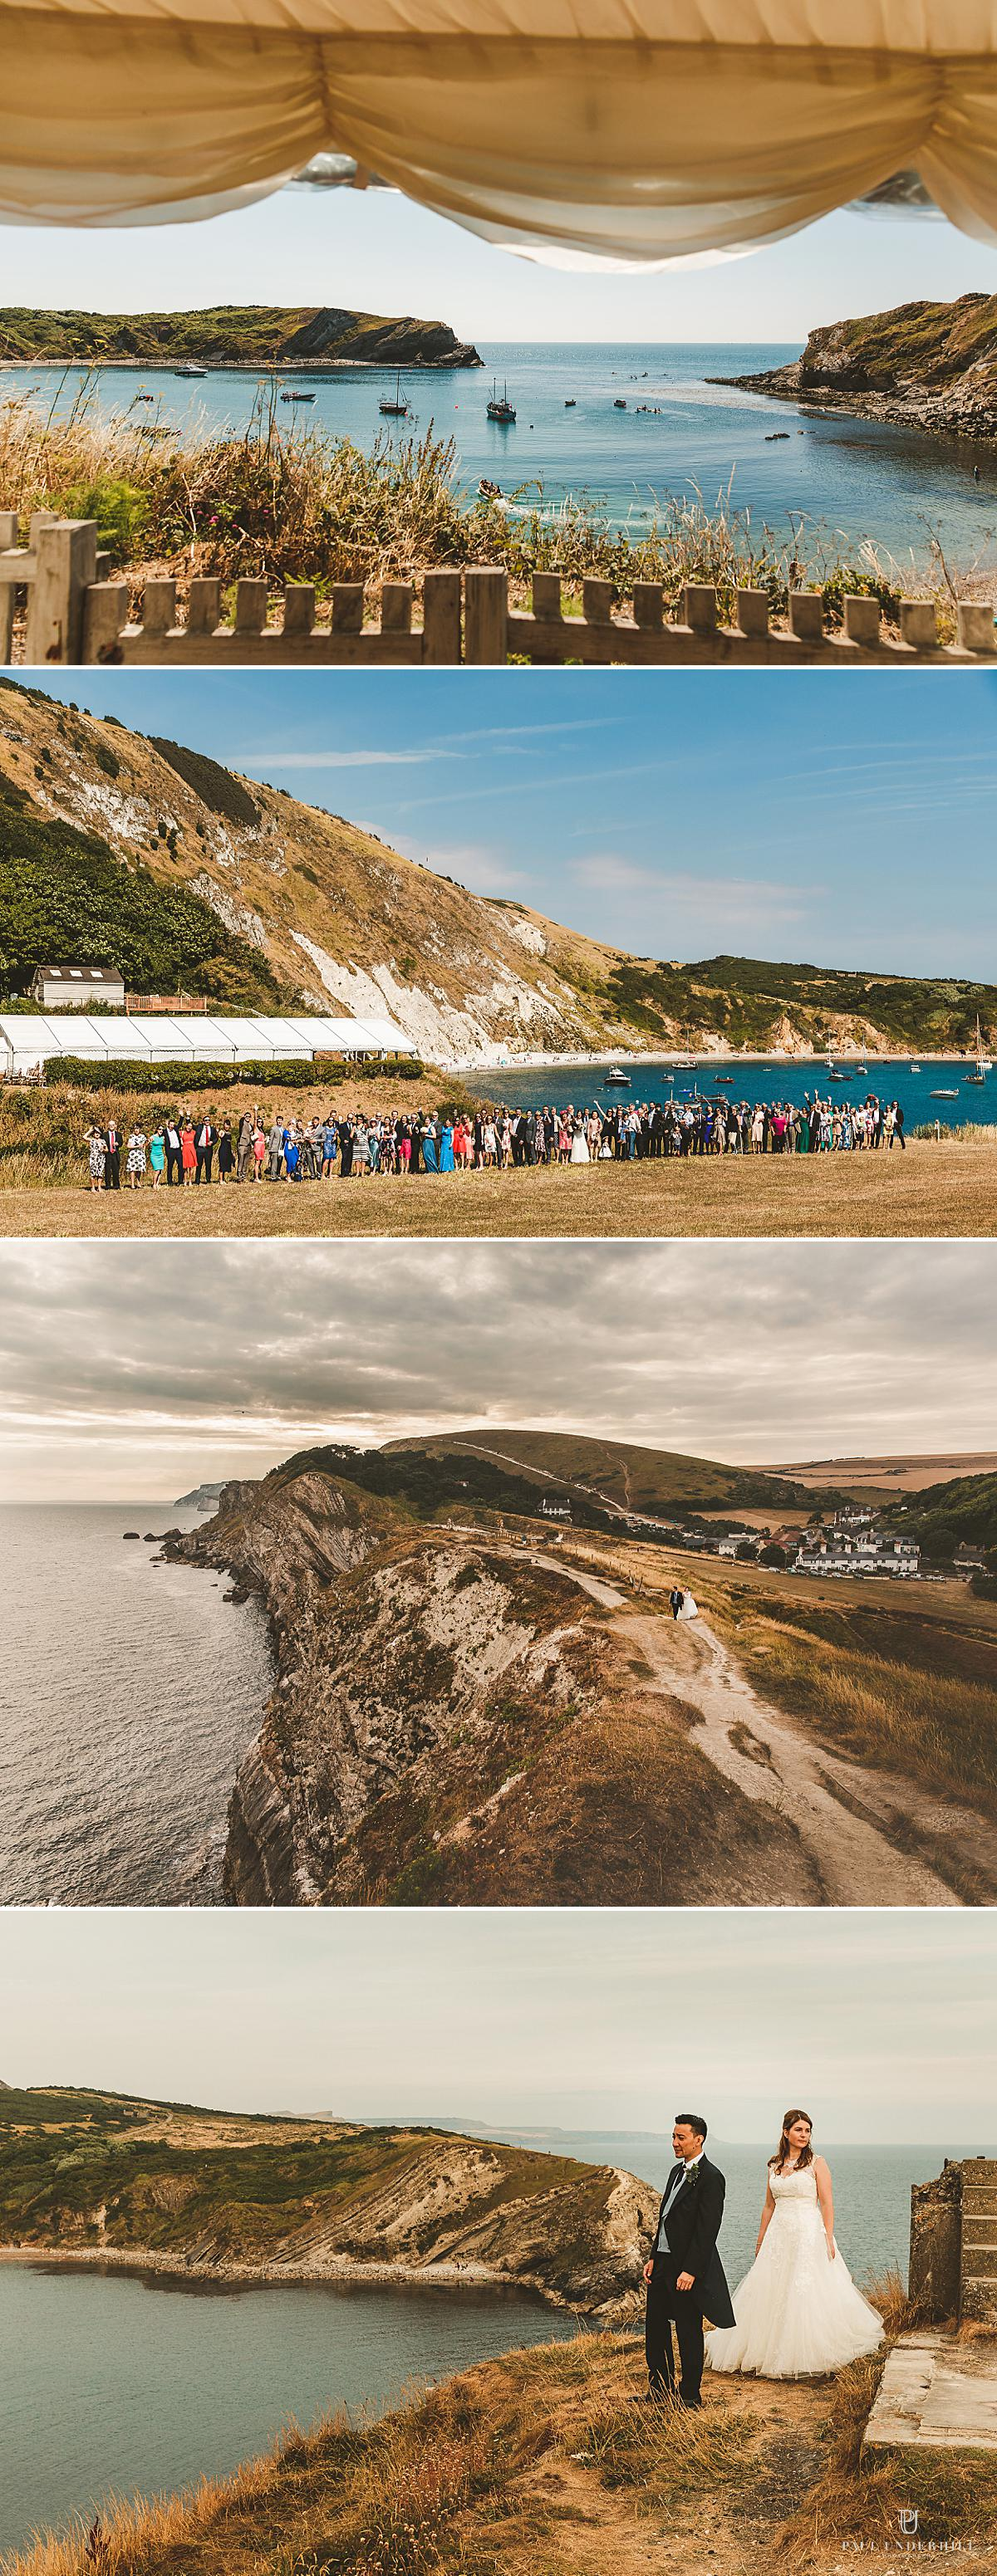 Lulworth Cove wedding photography